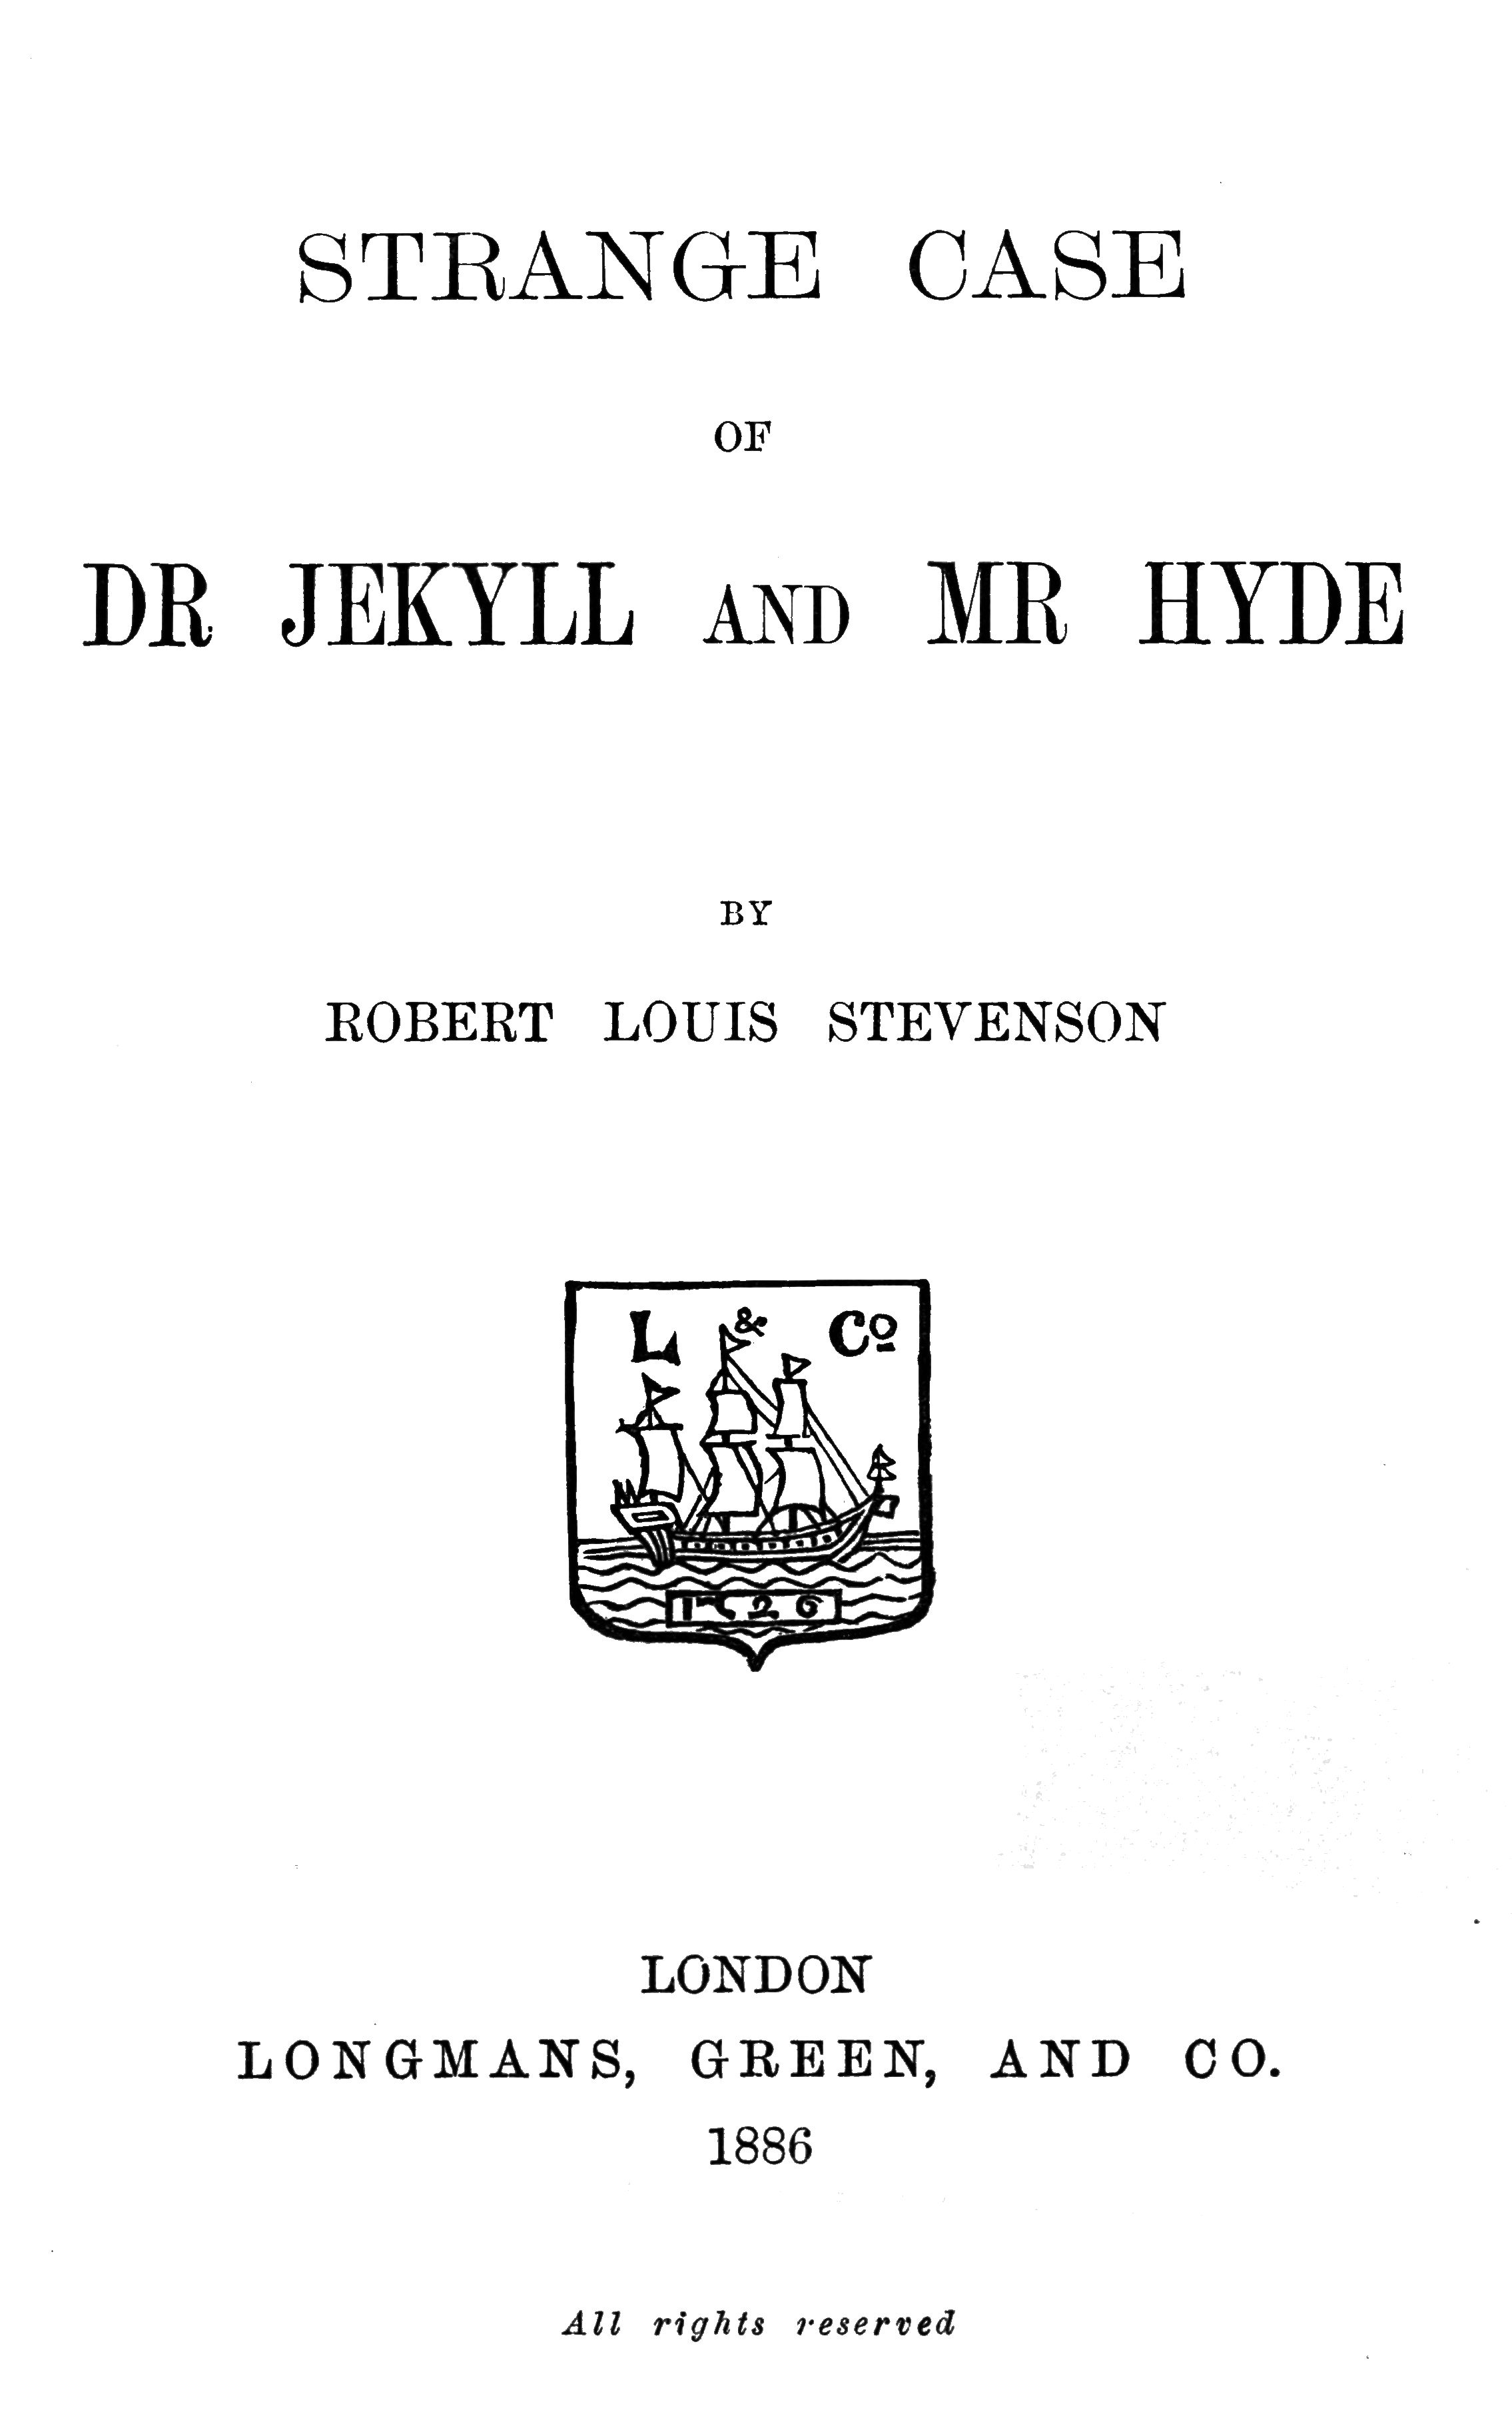 Strange Case of Dr Jekyll and Mr Hyde 005.jpg